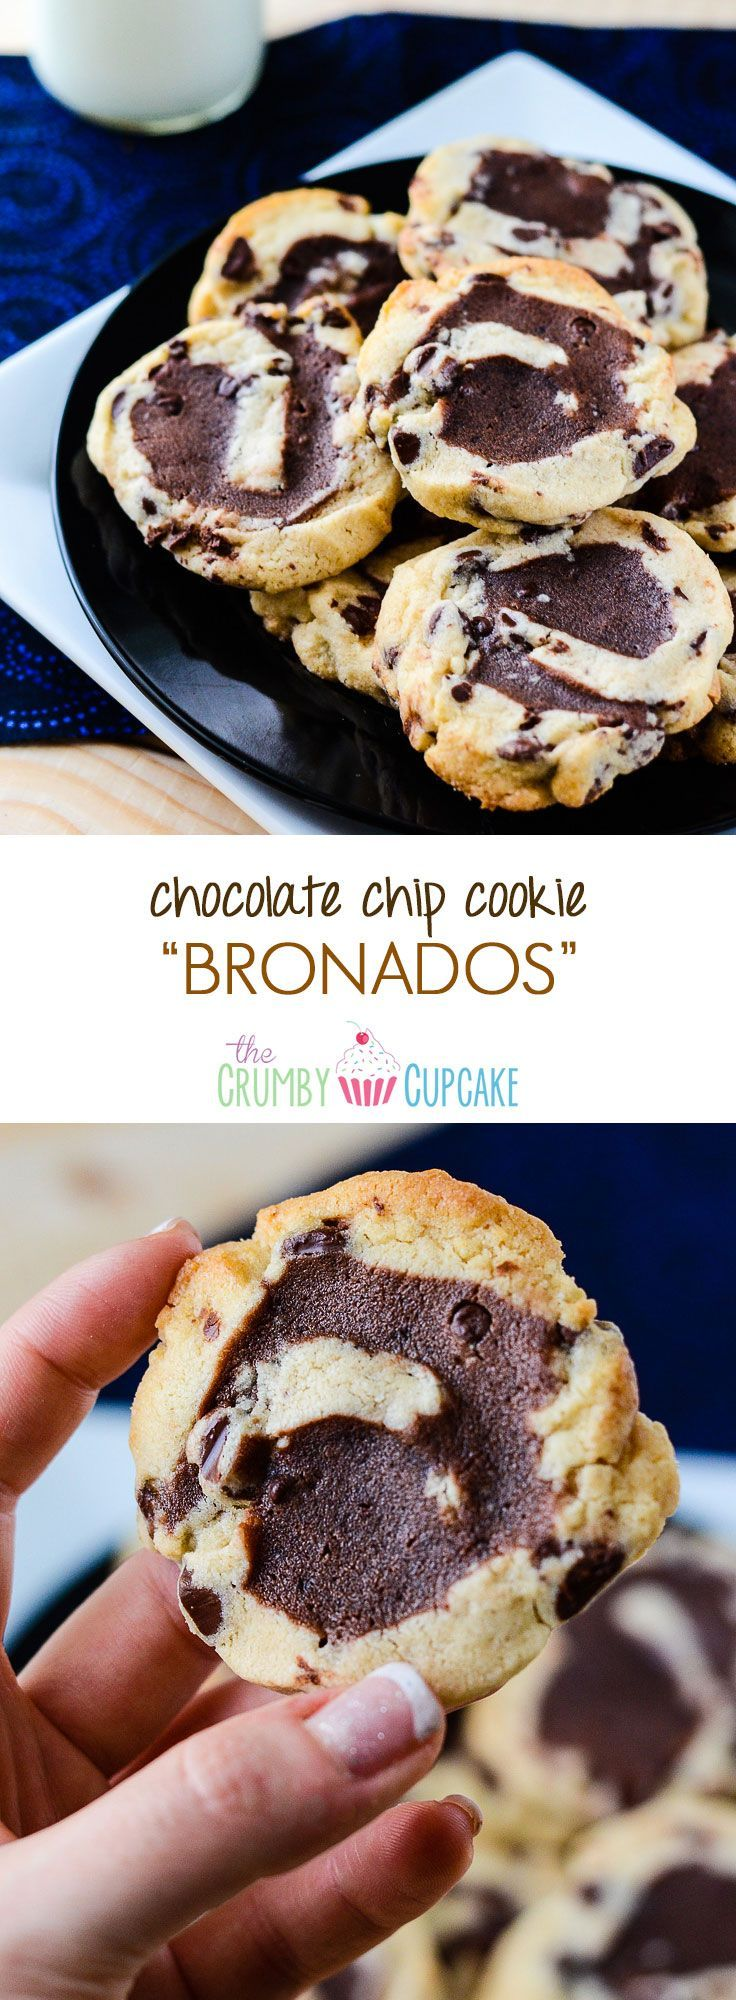 Chocolate Chip Cookie Bronados | A sturdy, cut-out style chocolate chip cookie, filled with brownie batter, rolled, sliced, and baked to brookie-like perfection. #brookie #brownie #cookie #chocolate #chocolatechip #bronado #holiday #recipe